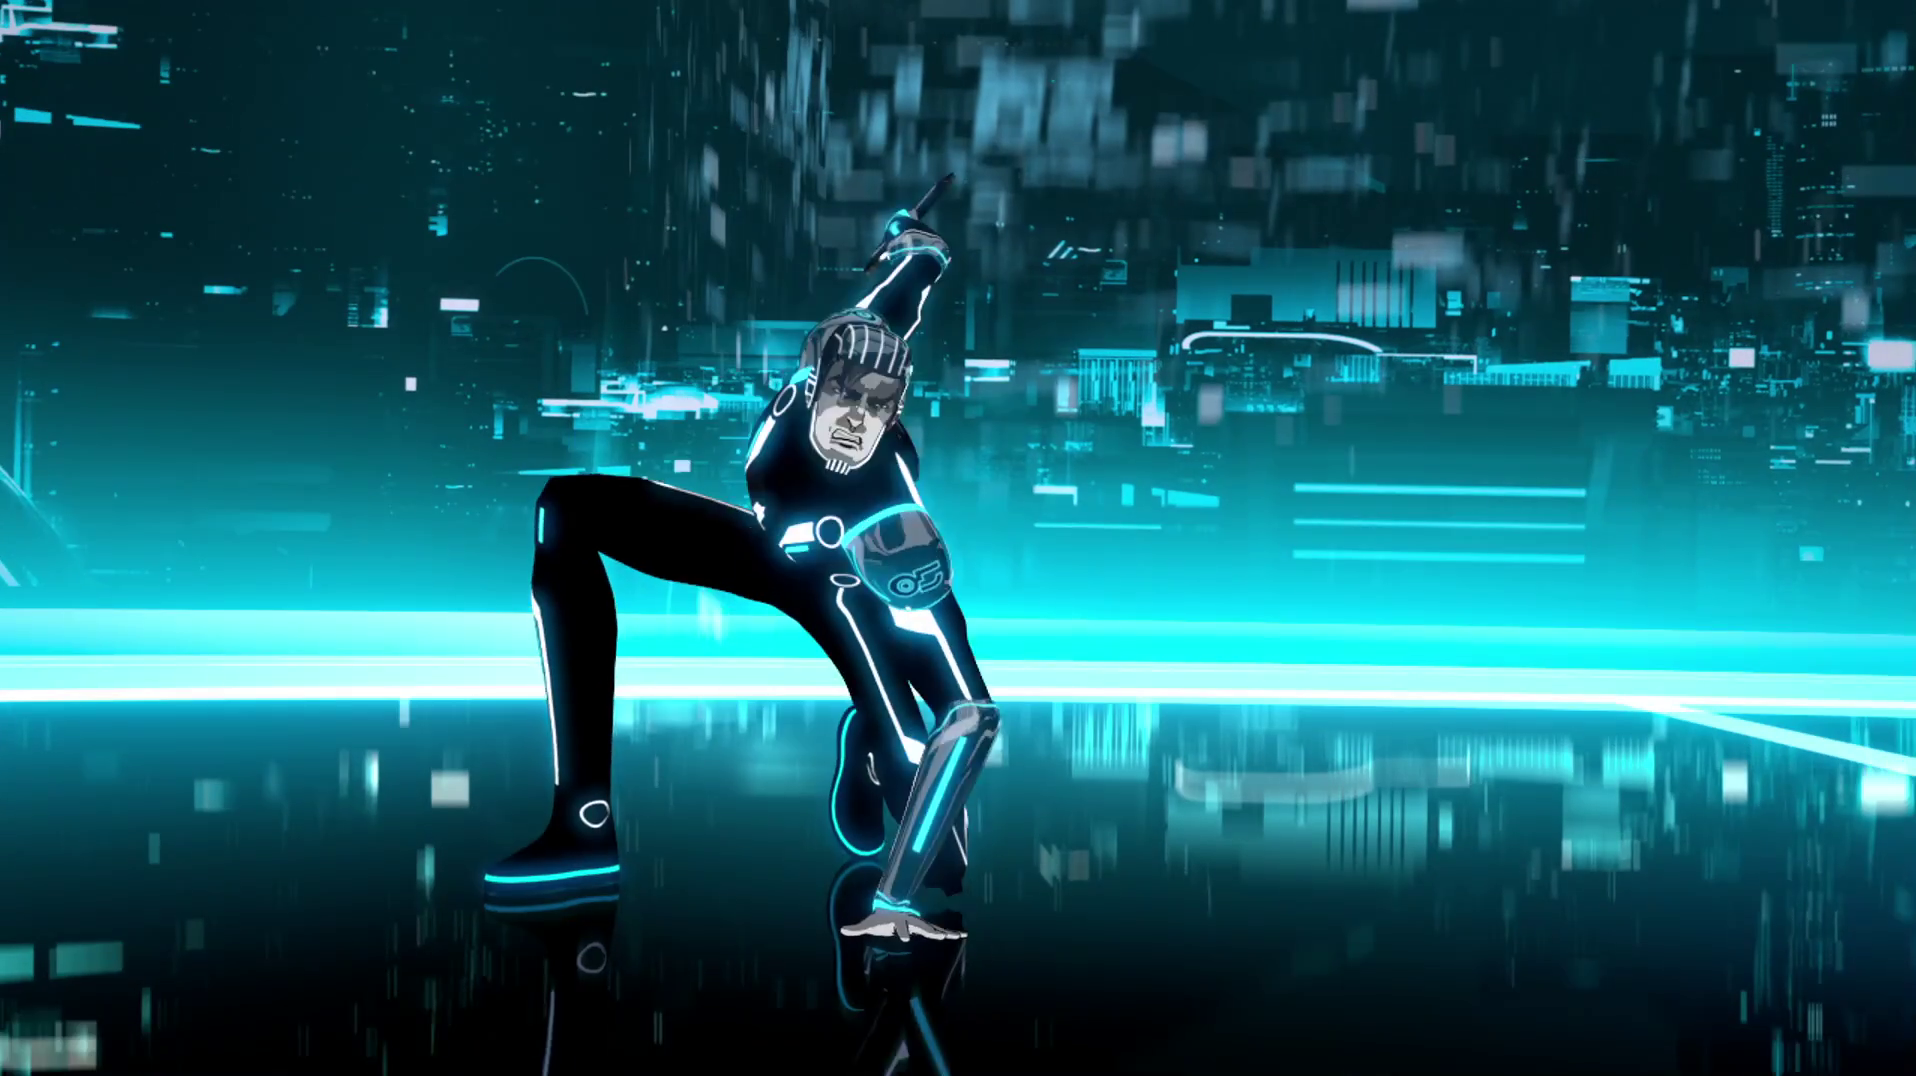 Tron_2019-08-04-23h03m39s435.png